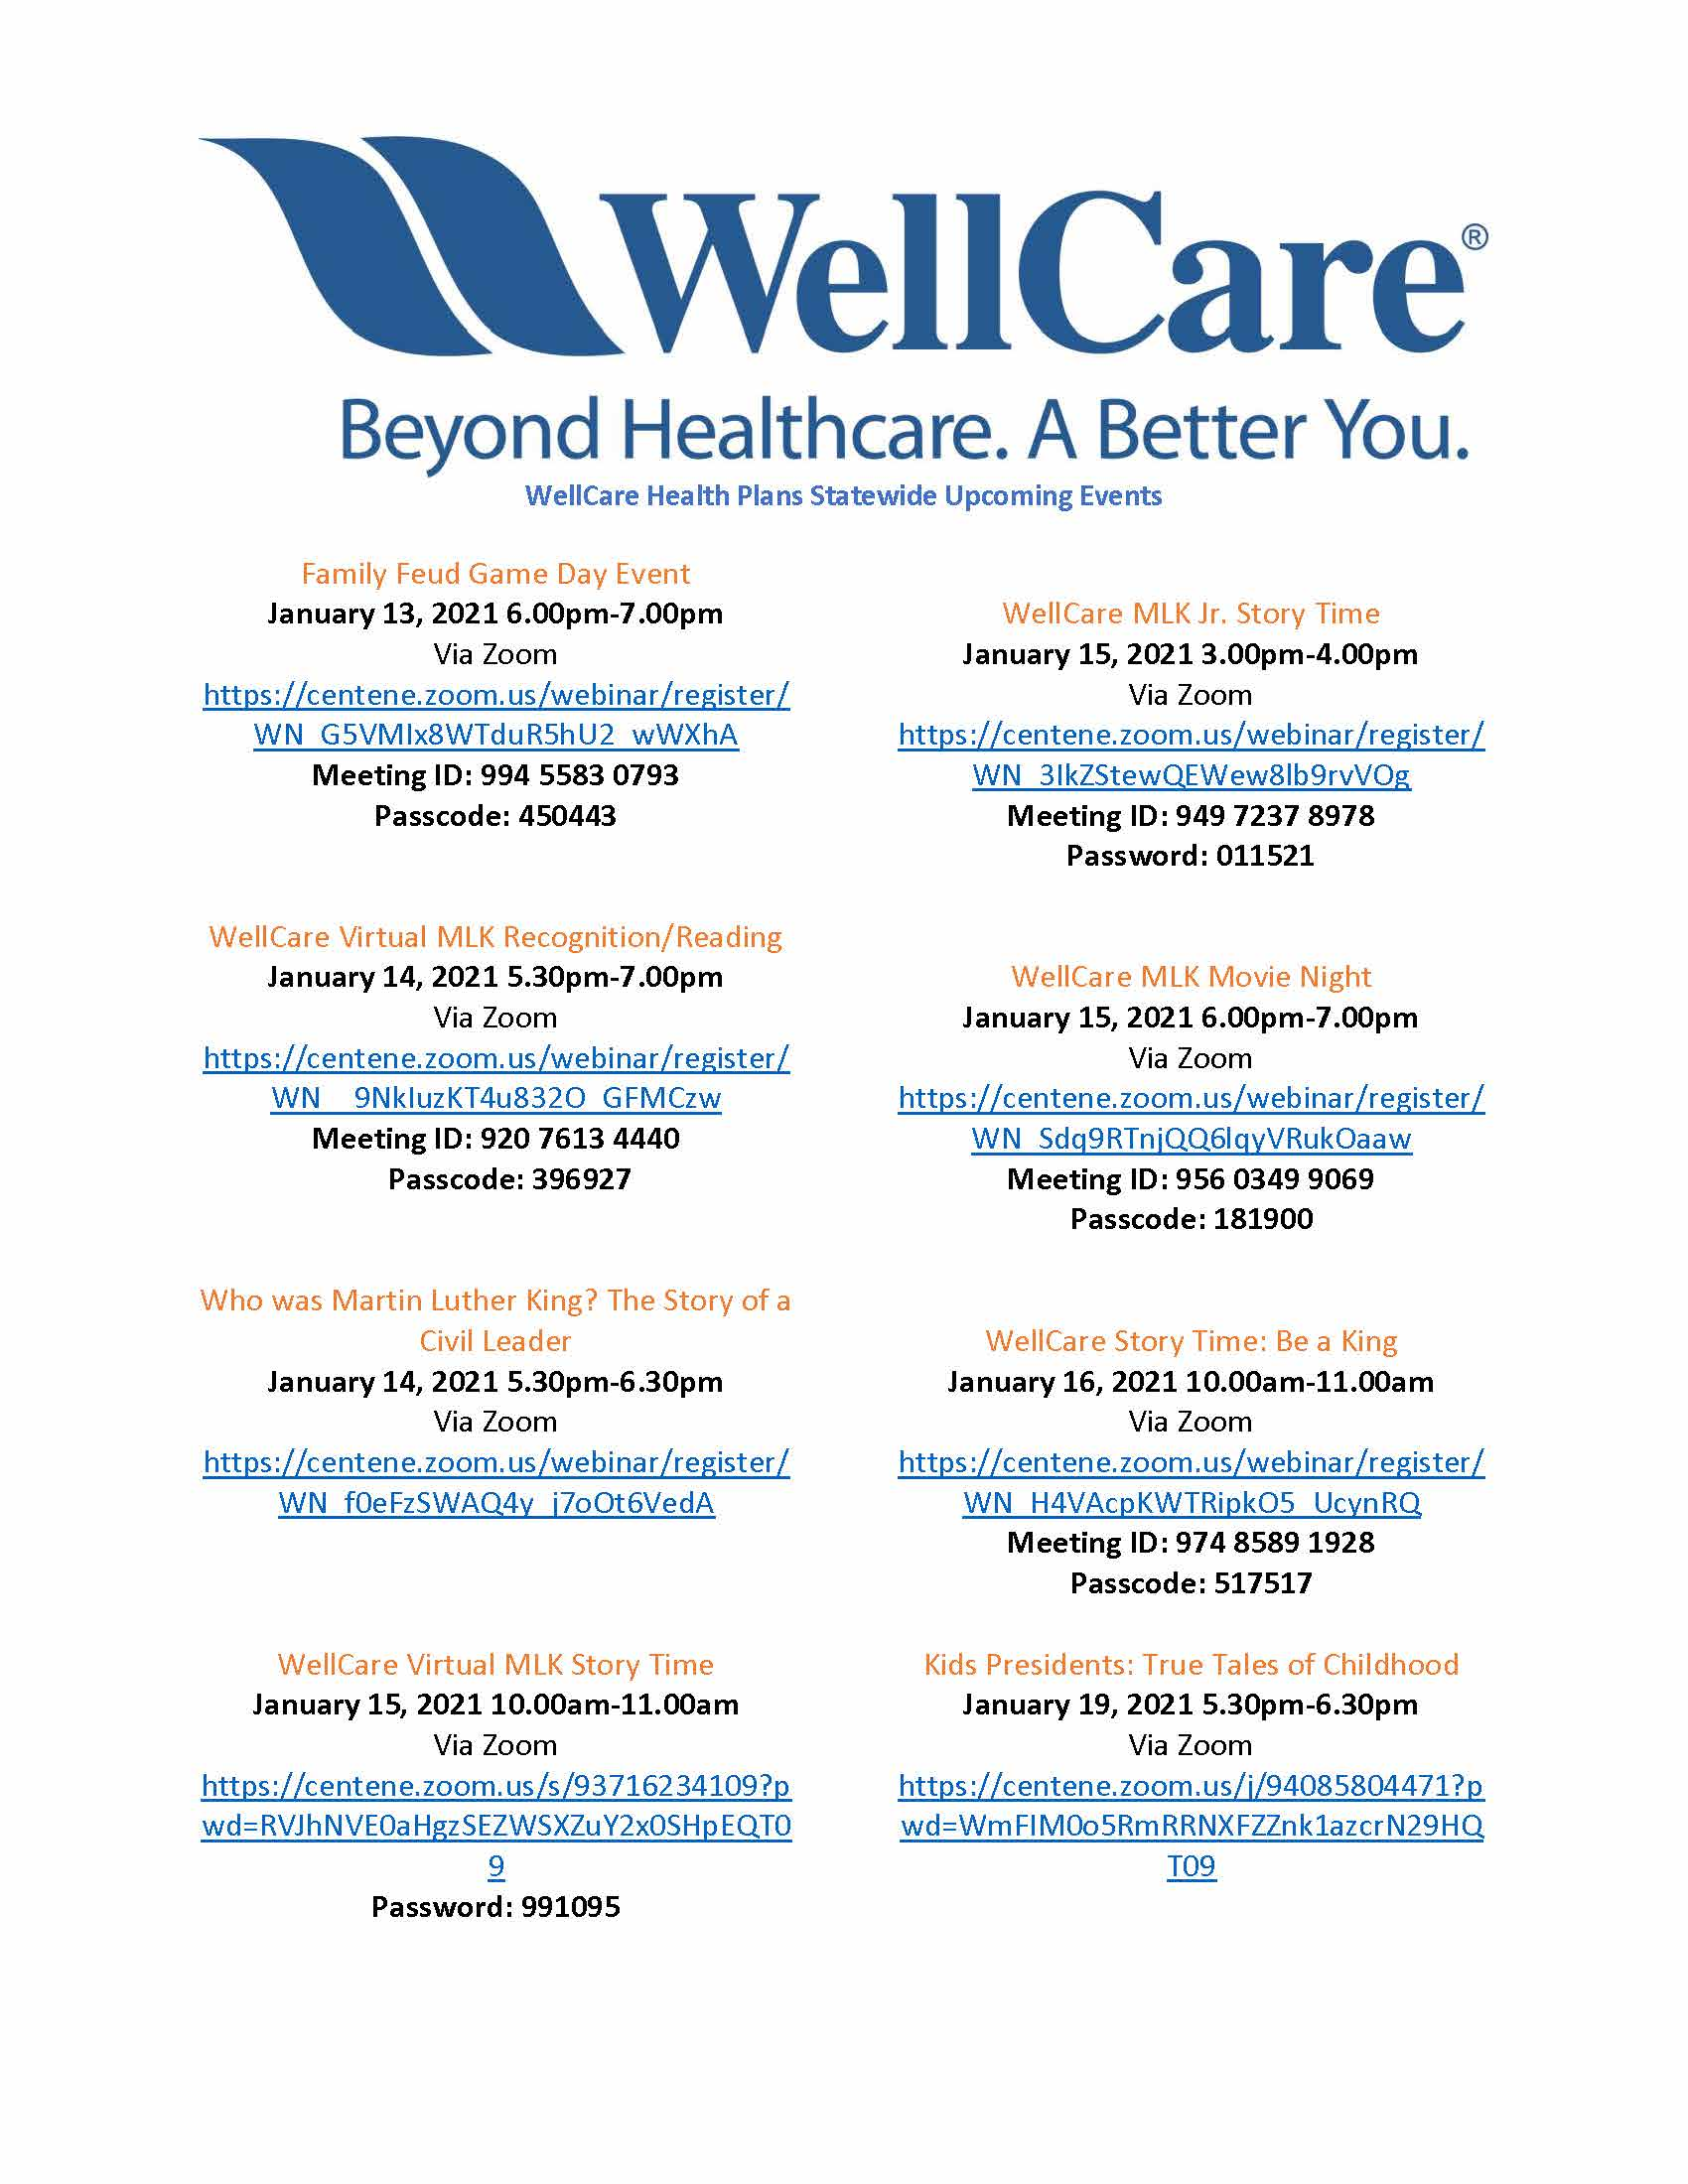 WellCare Events